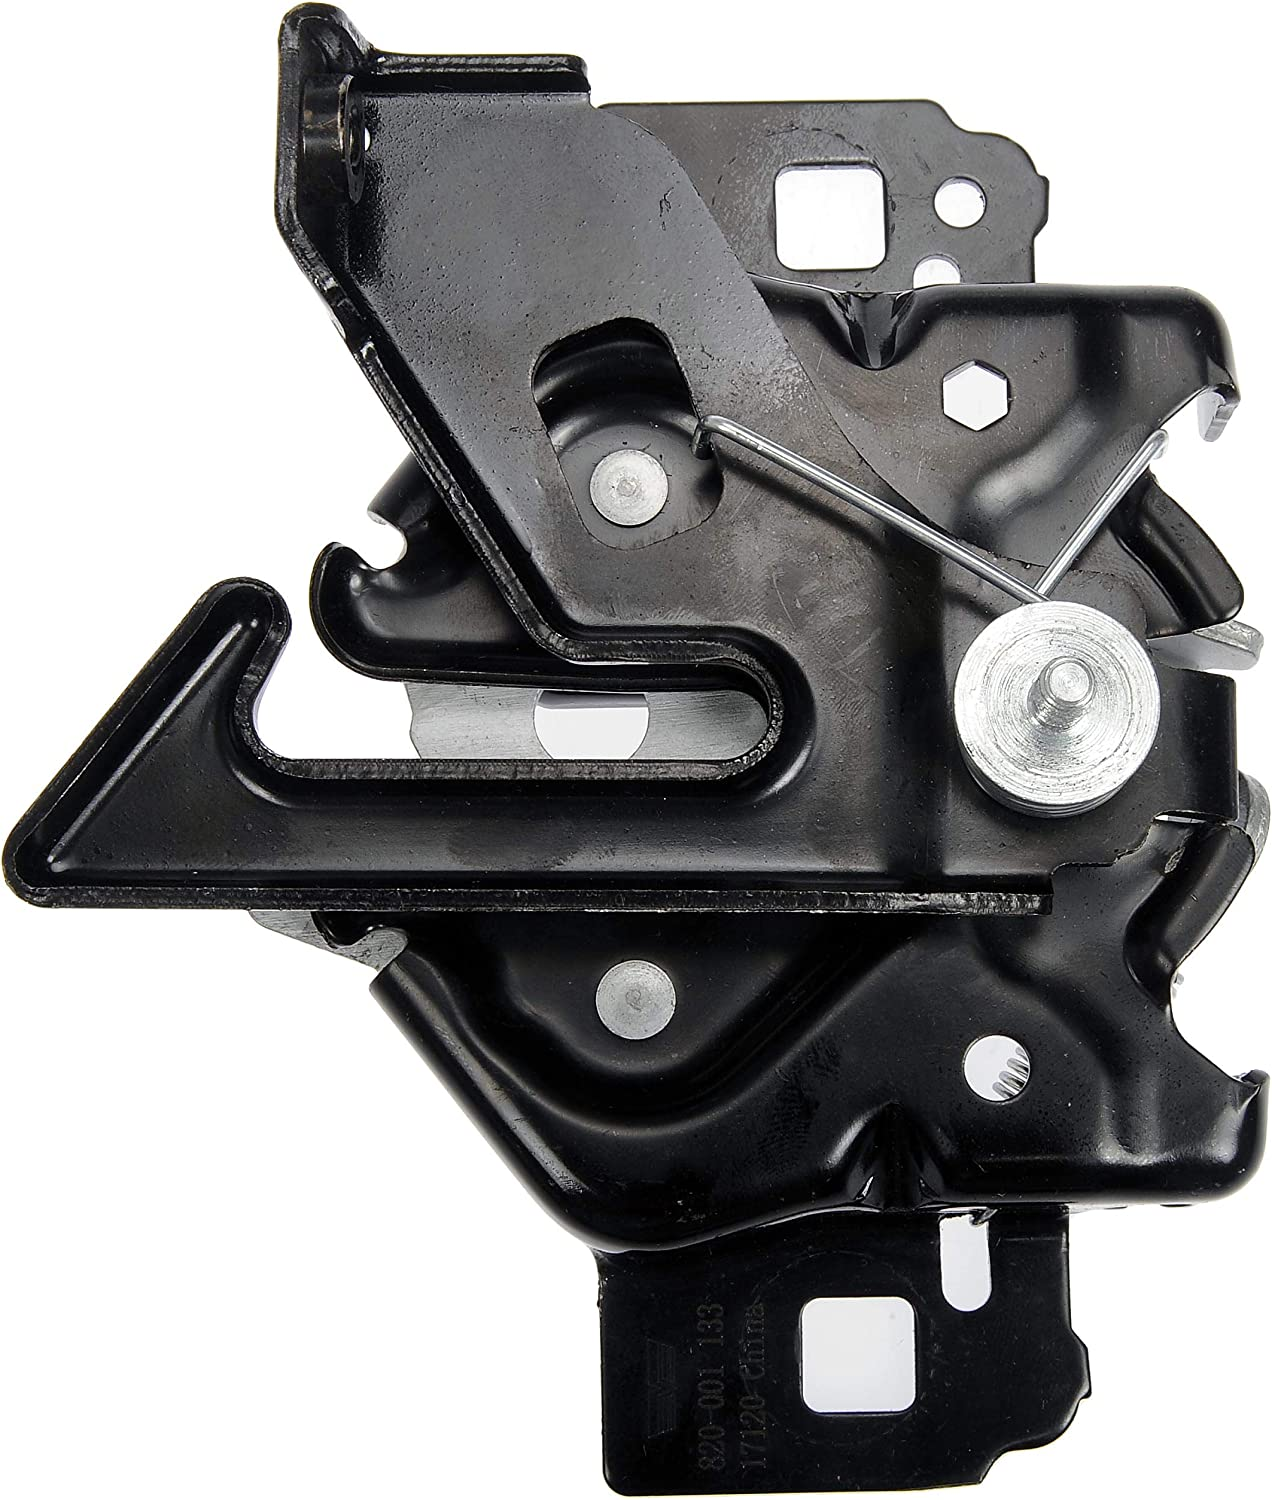 Dorman 820-001 Hood Latch Assembly for Select Ford//Mercury Models